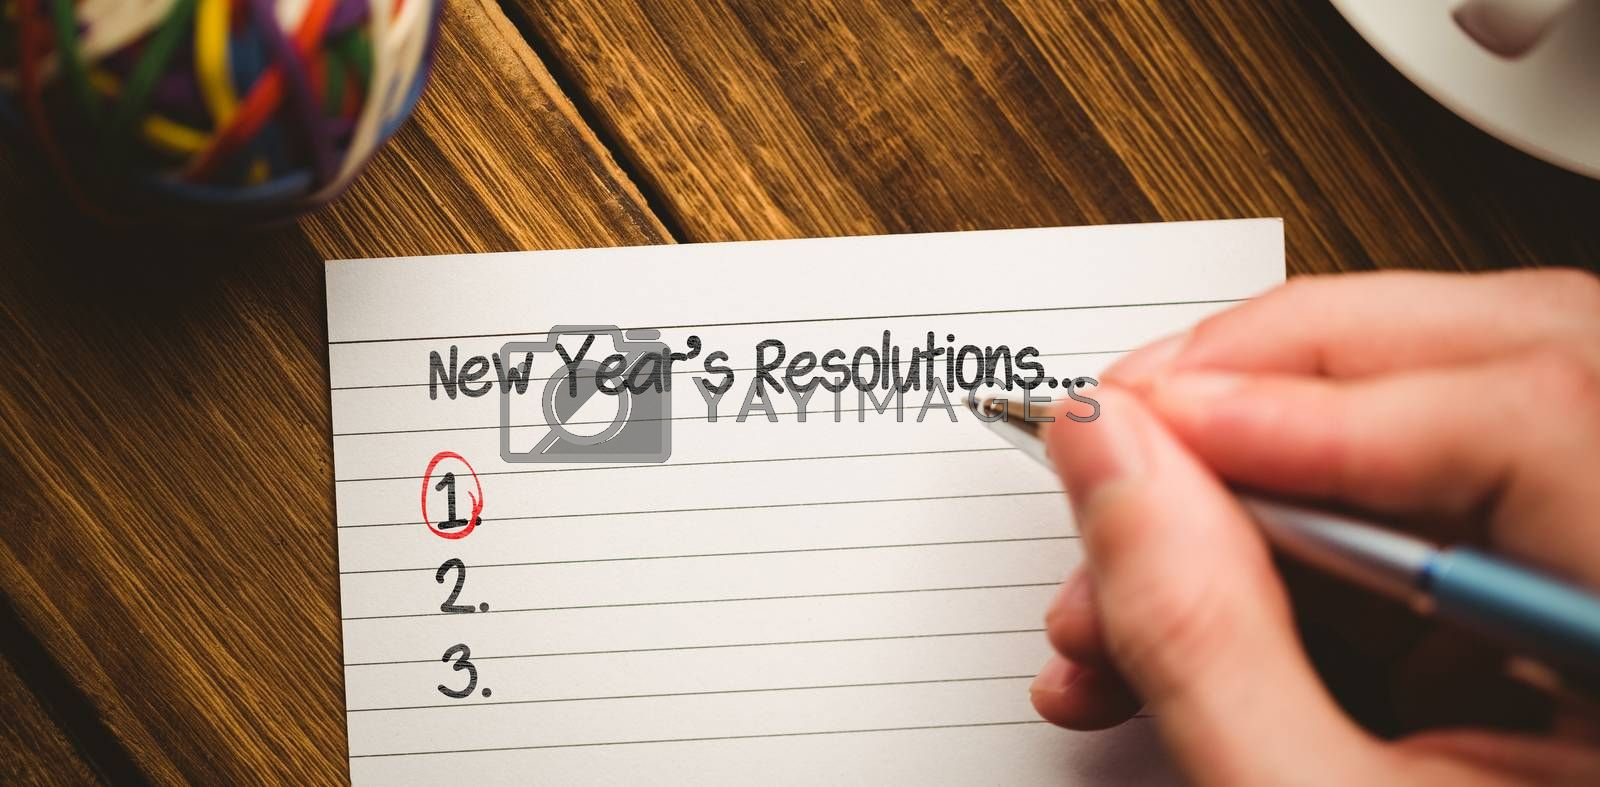 New years resolution list against cropped hand writing in book with cup on table